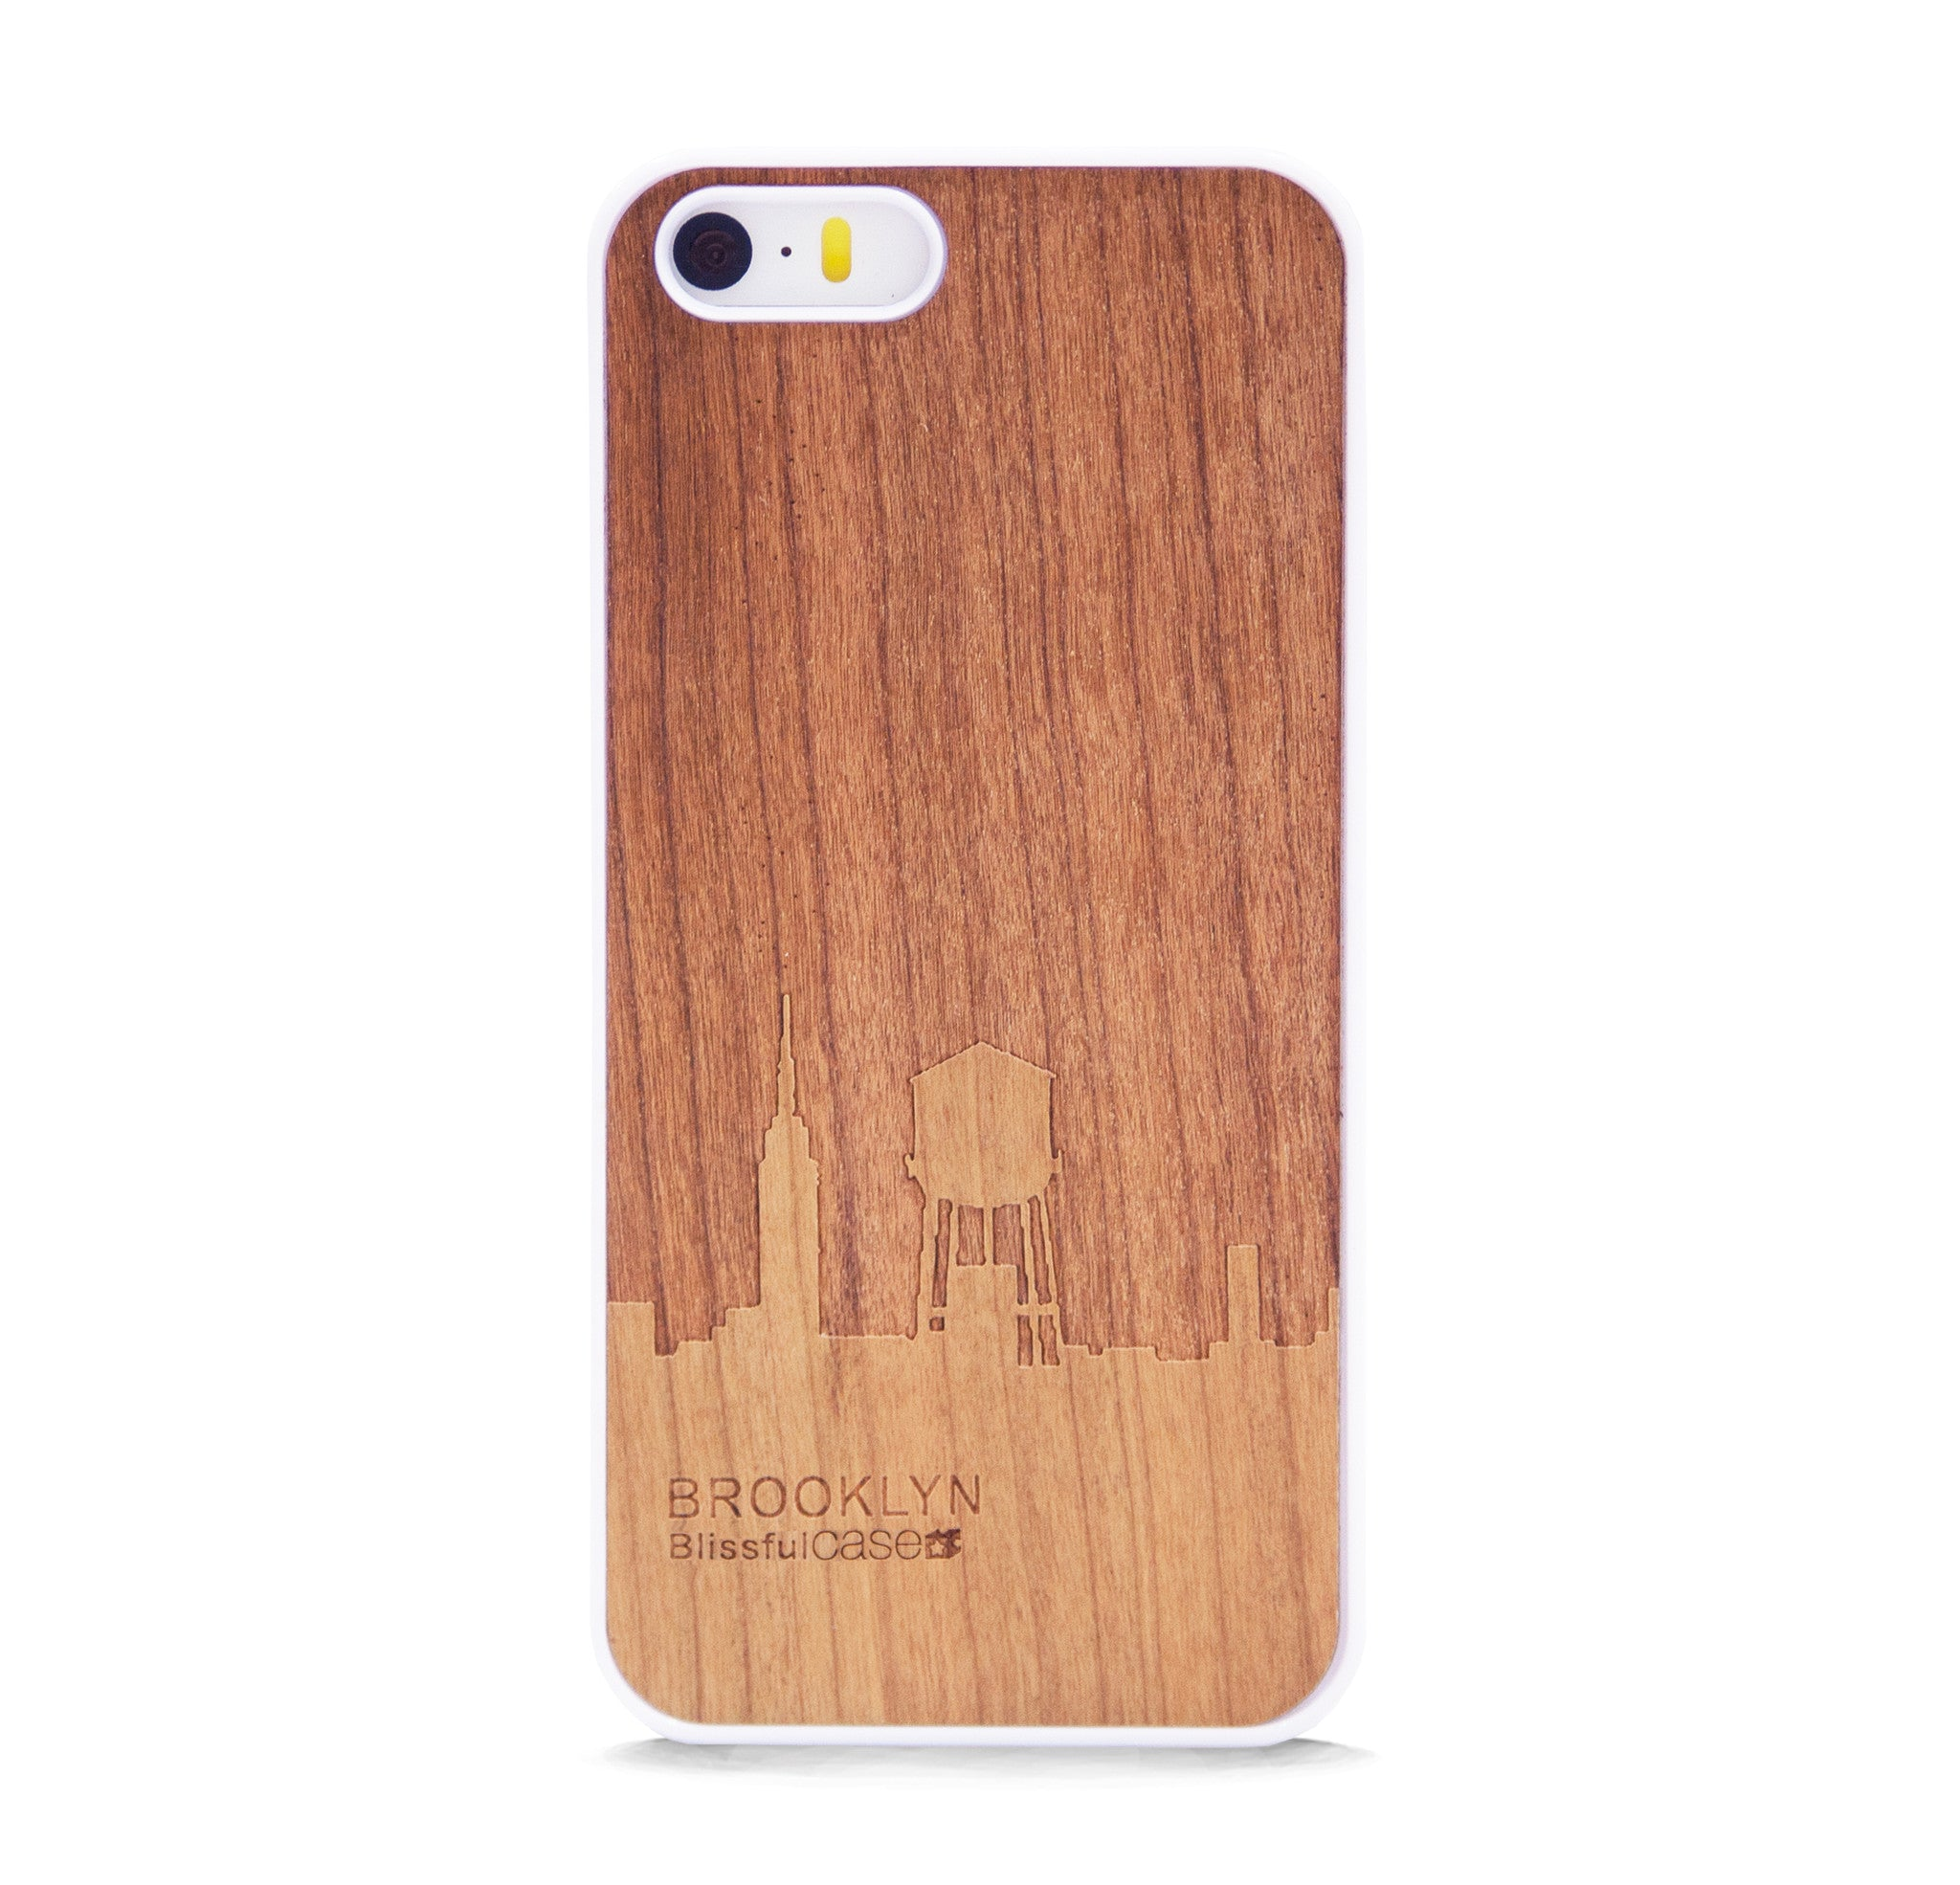 *WOOD CASE BROOKLYN FOR IPHONE 5/5s